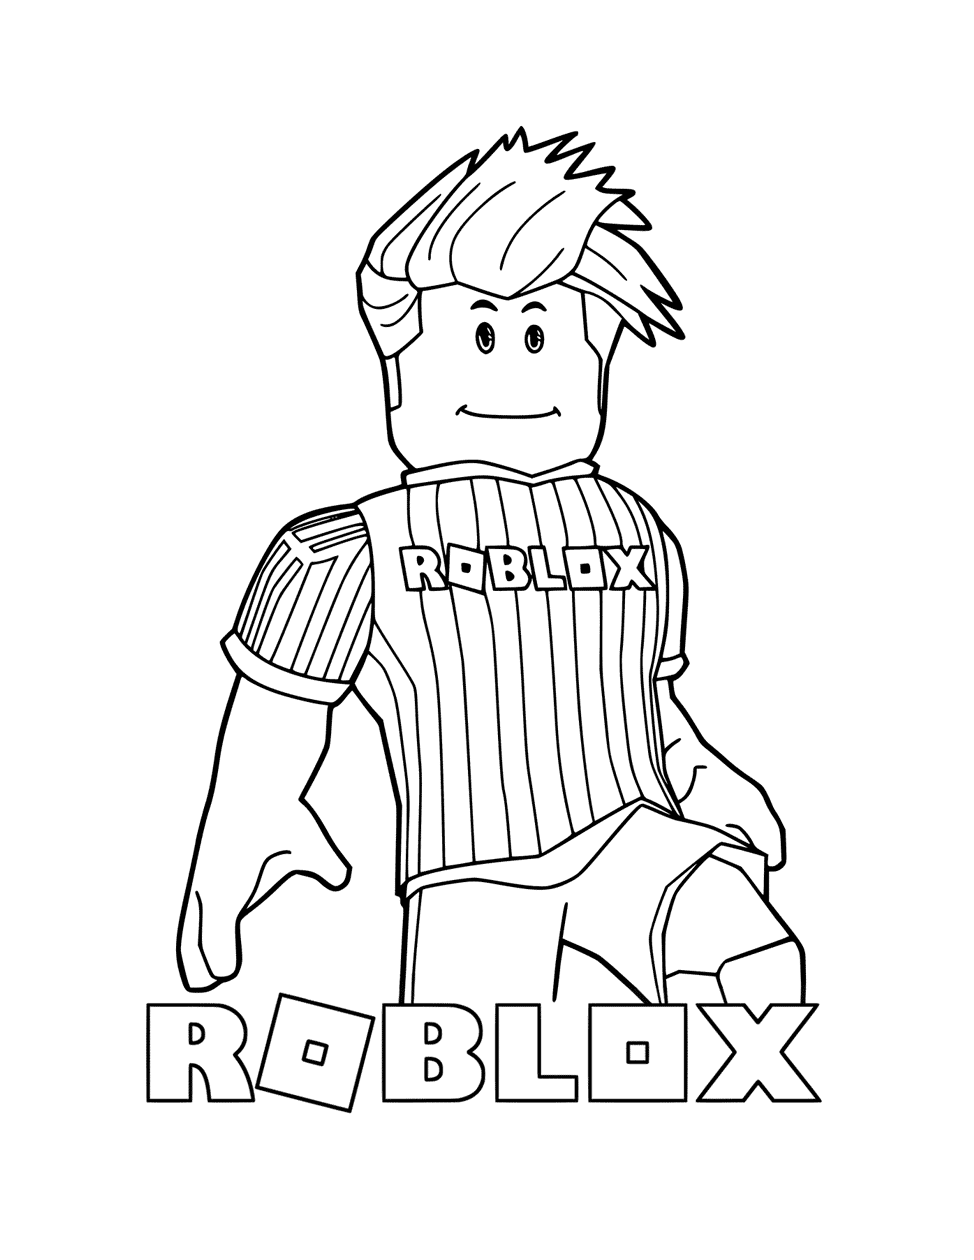 Roblox Soccer Player Coloring Page